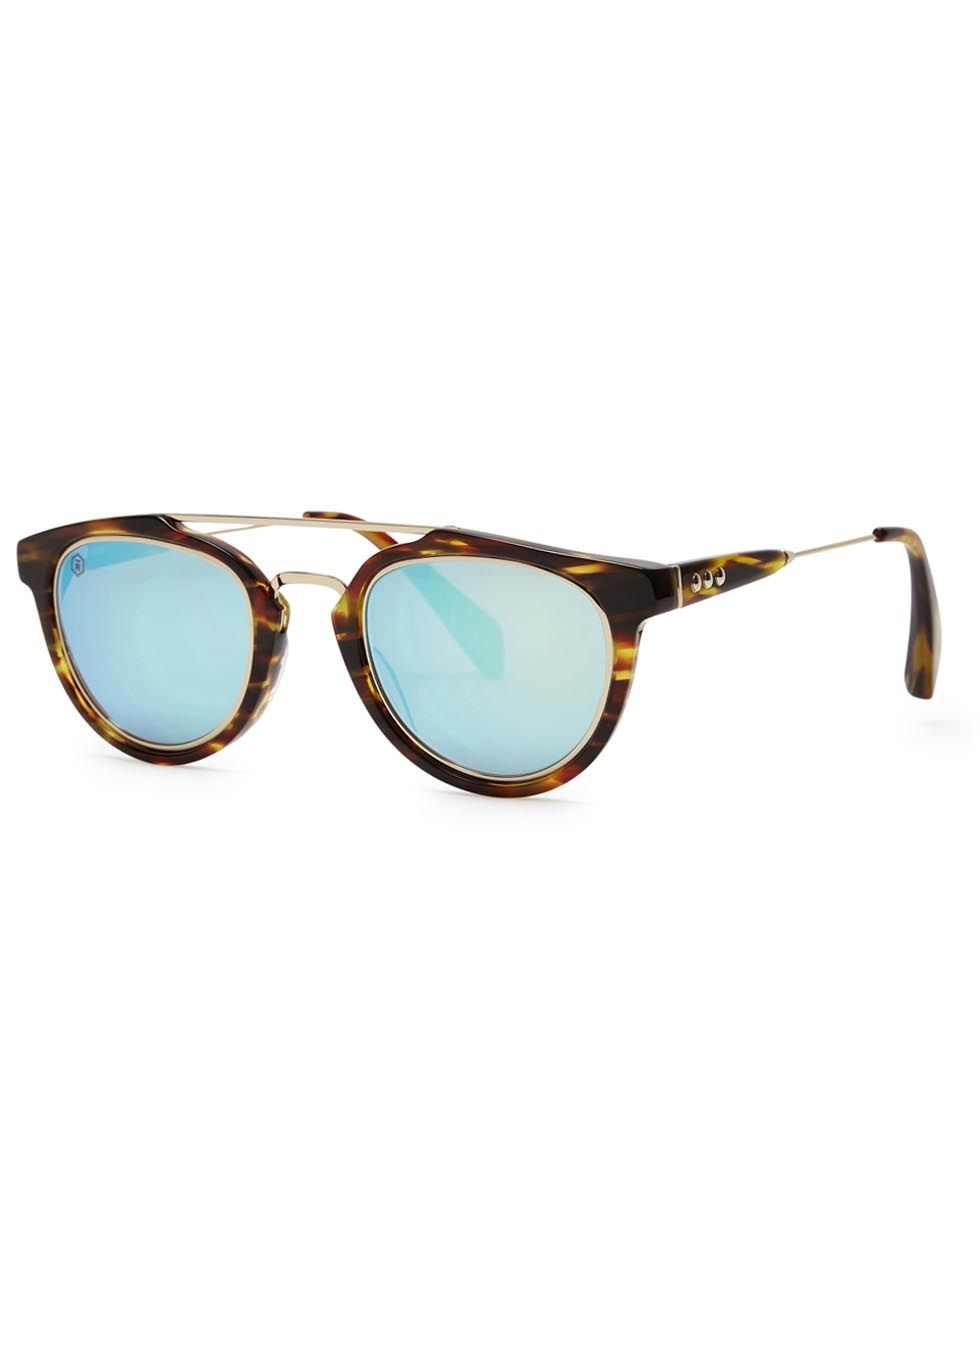 31c4fa61da7 Taylor Morris Eyewear brown tortoiseshell acetate sunglasses  Designer-stamped mirrored cyan lenses